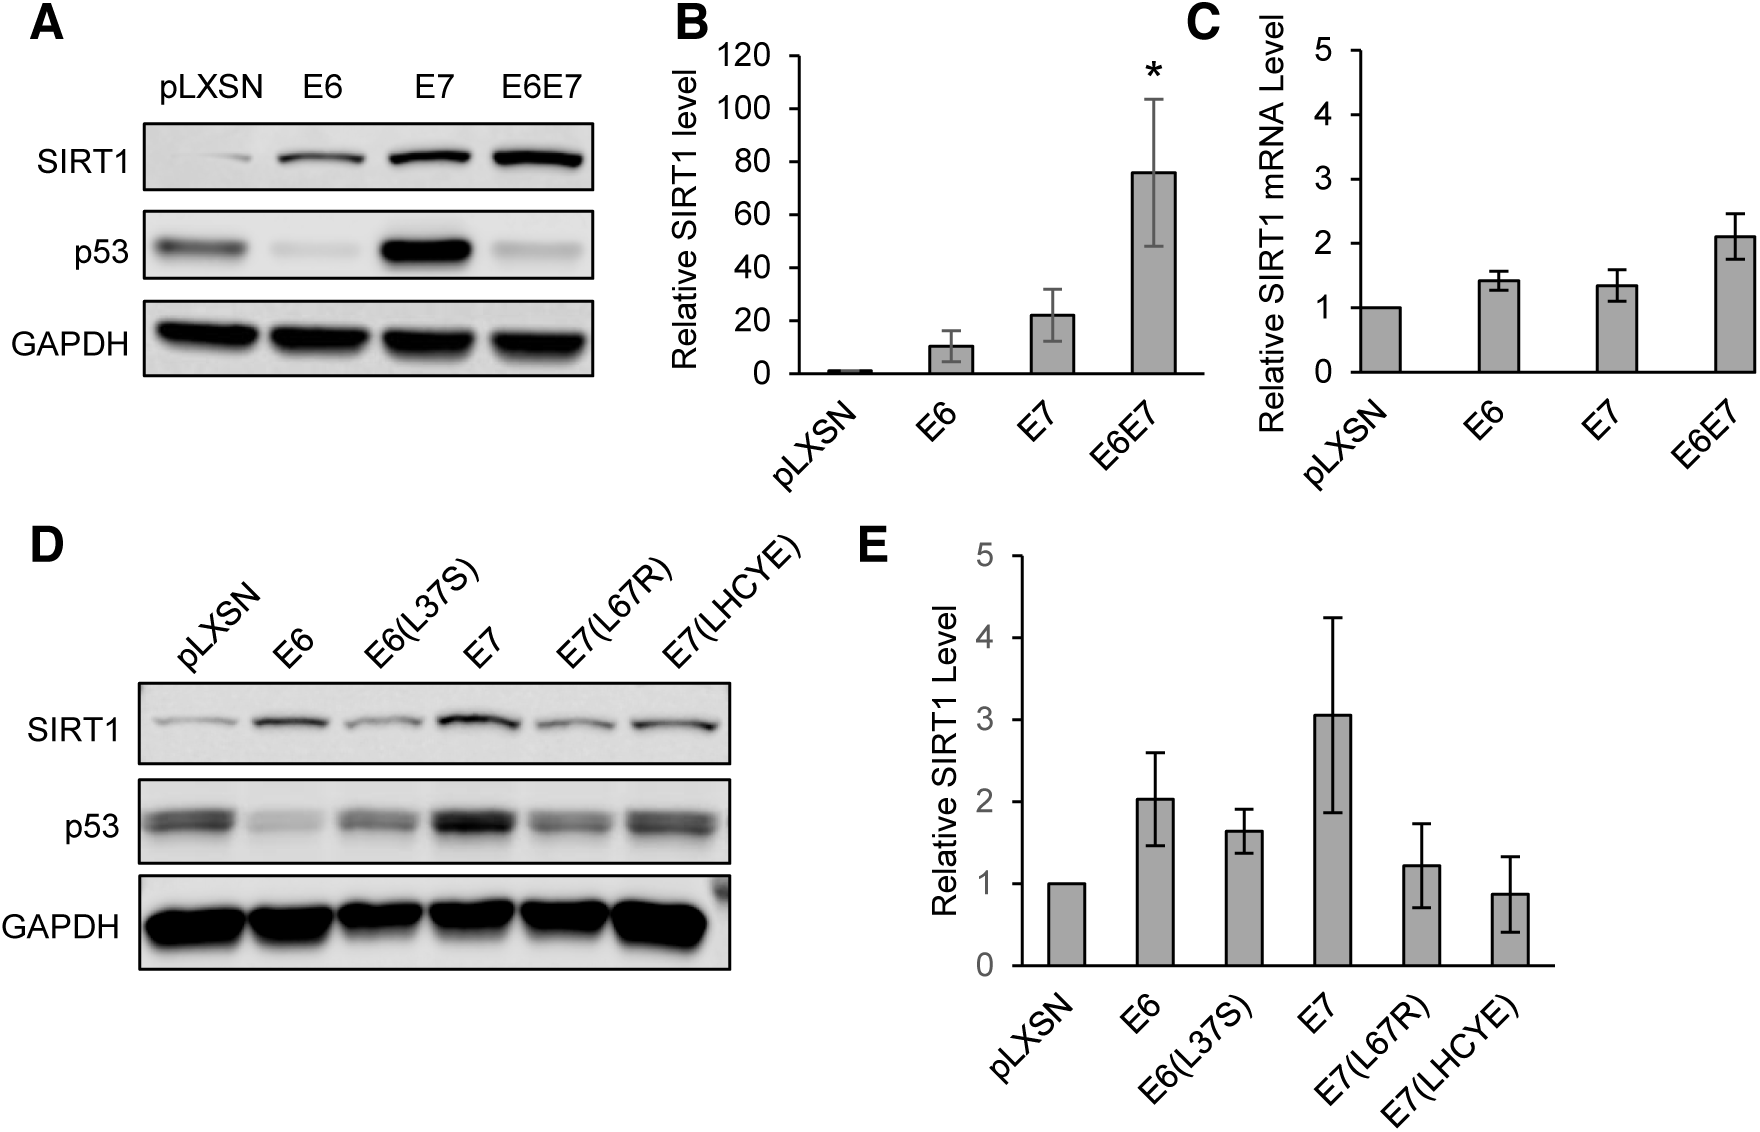 HPV31 E6 and E7 both increase levels of SIRT1 protein in primary keratinocytes.